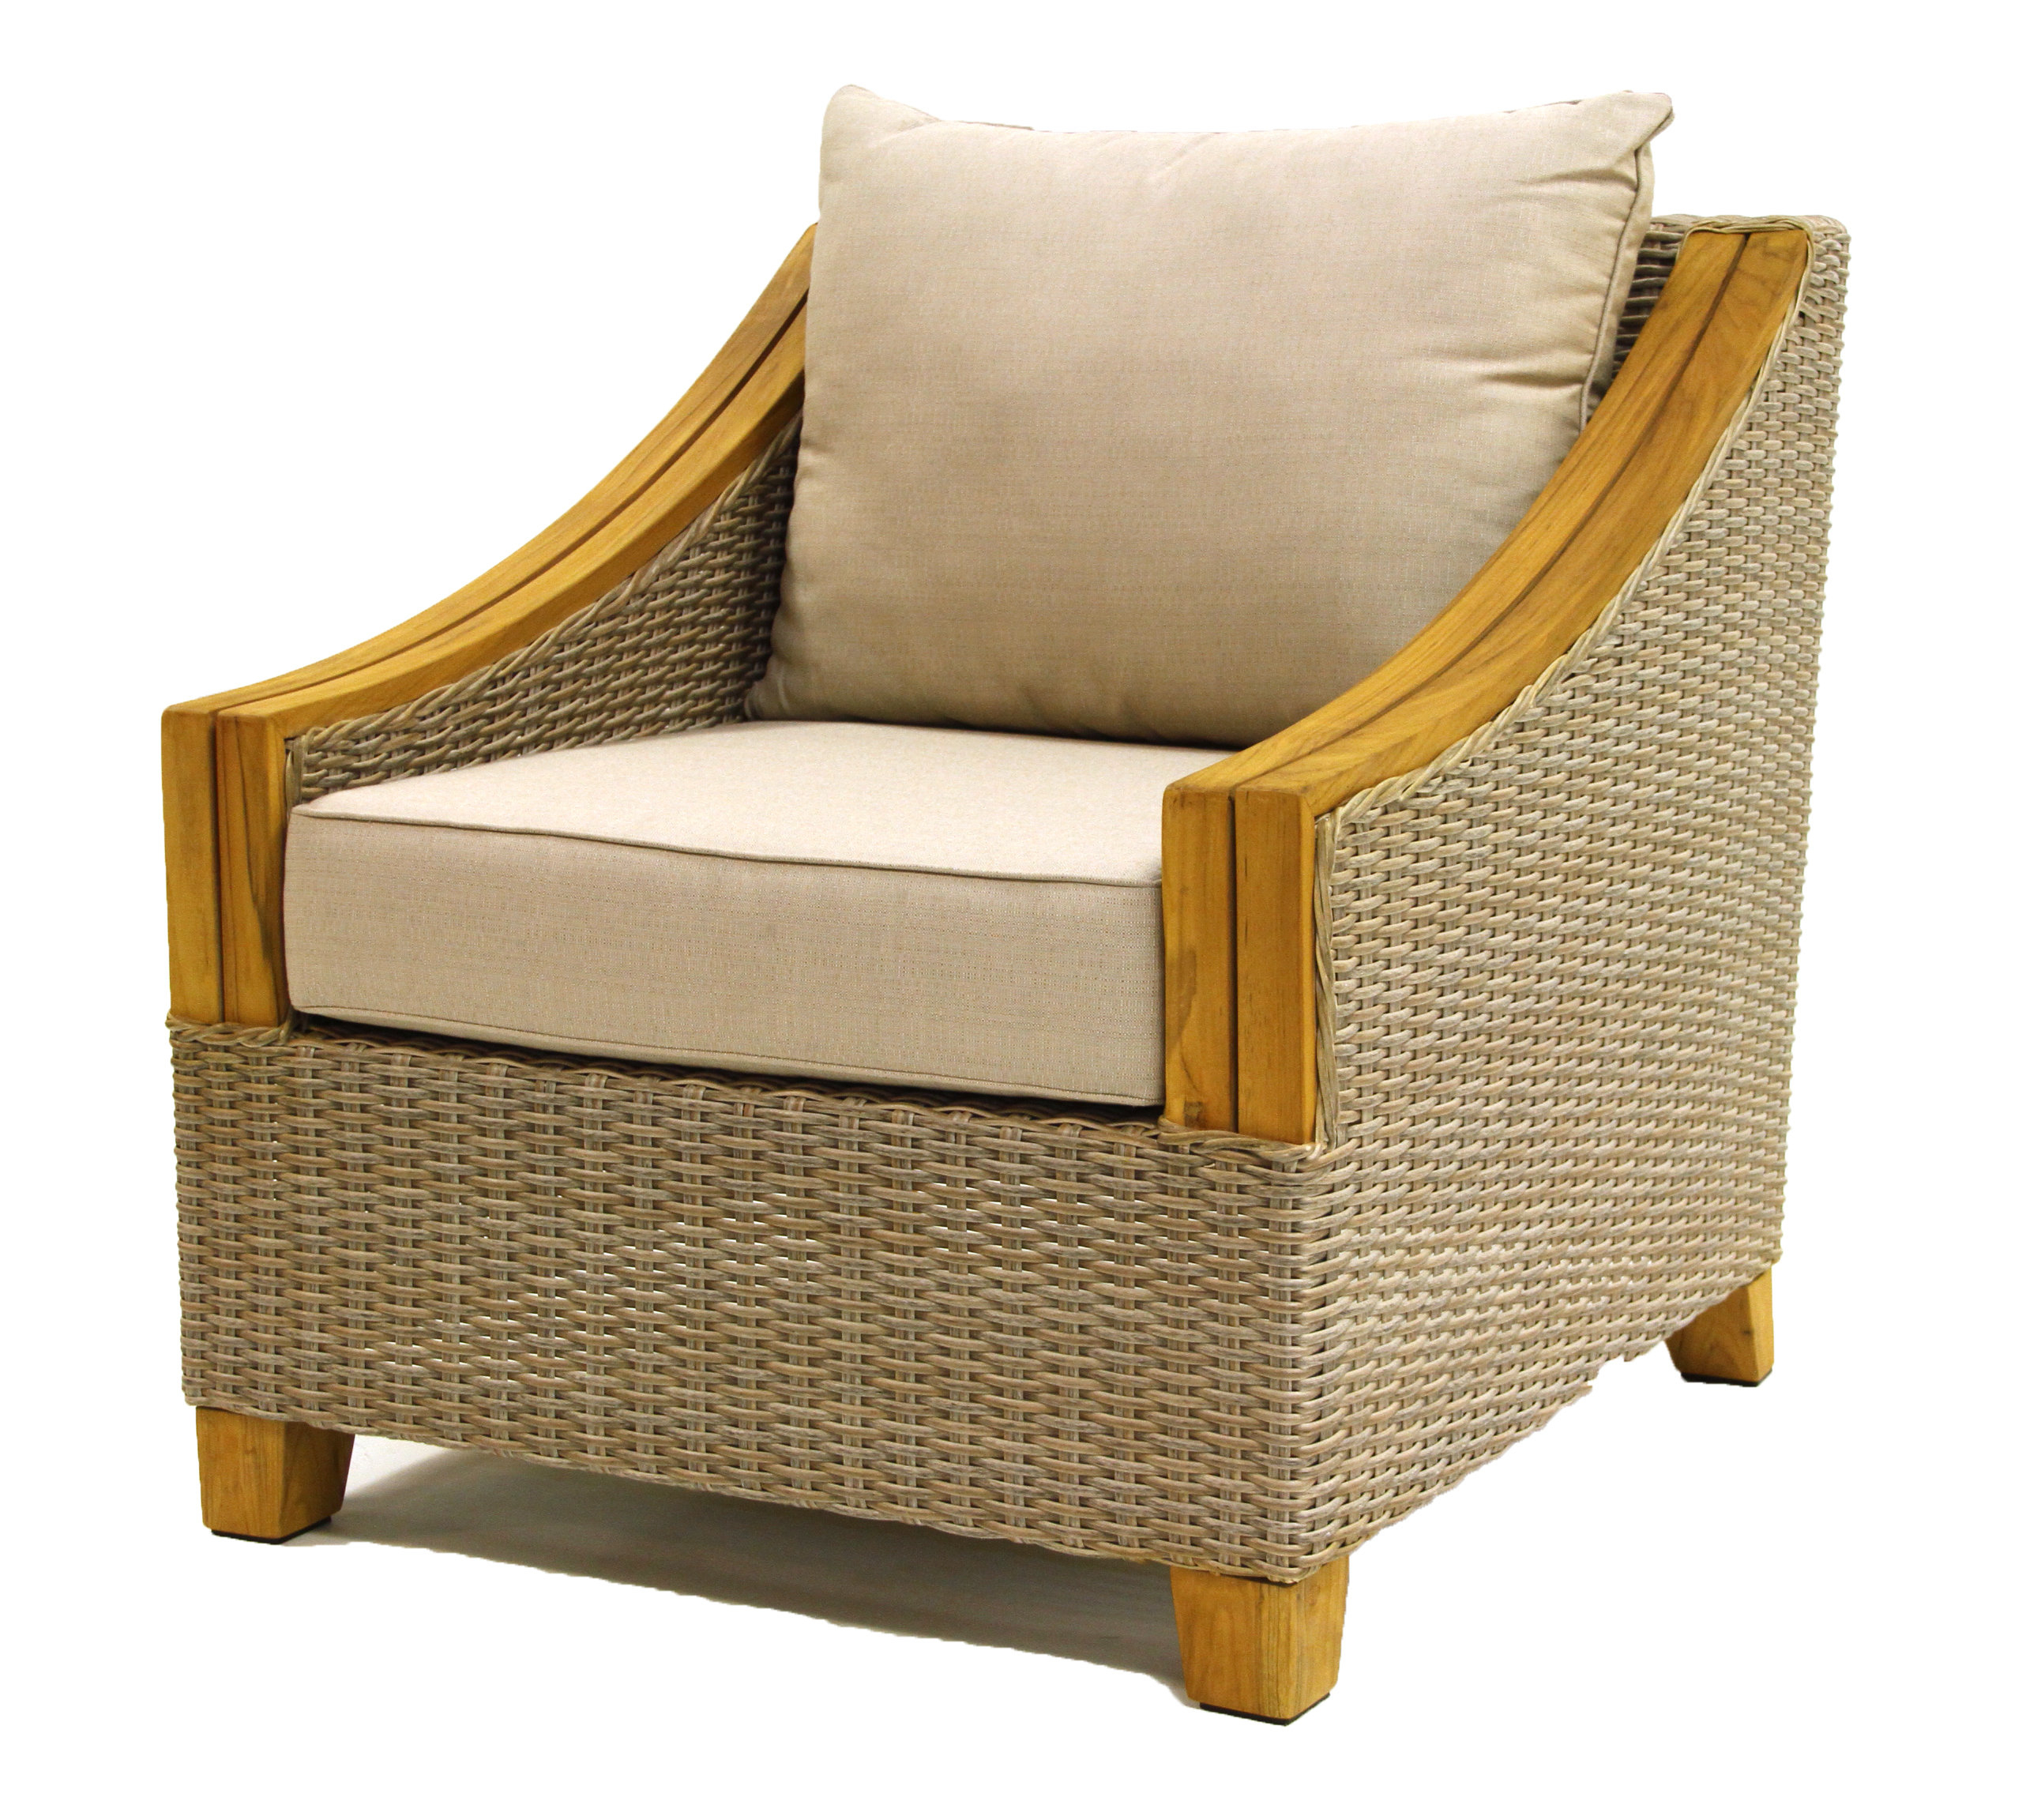 Kincaid Teak Patio Chair With Cushions Pertaining To Fashionable Montford Teak Patio Sofas With Cushions (View 7 of 20)